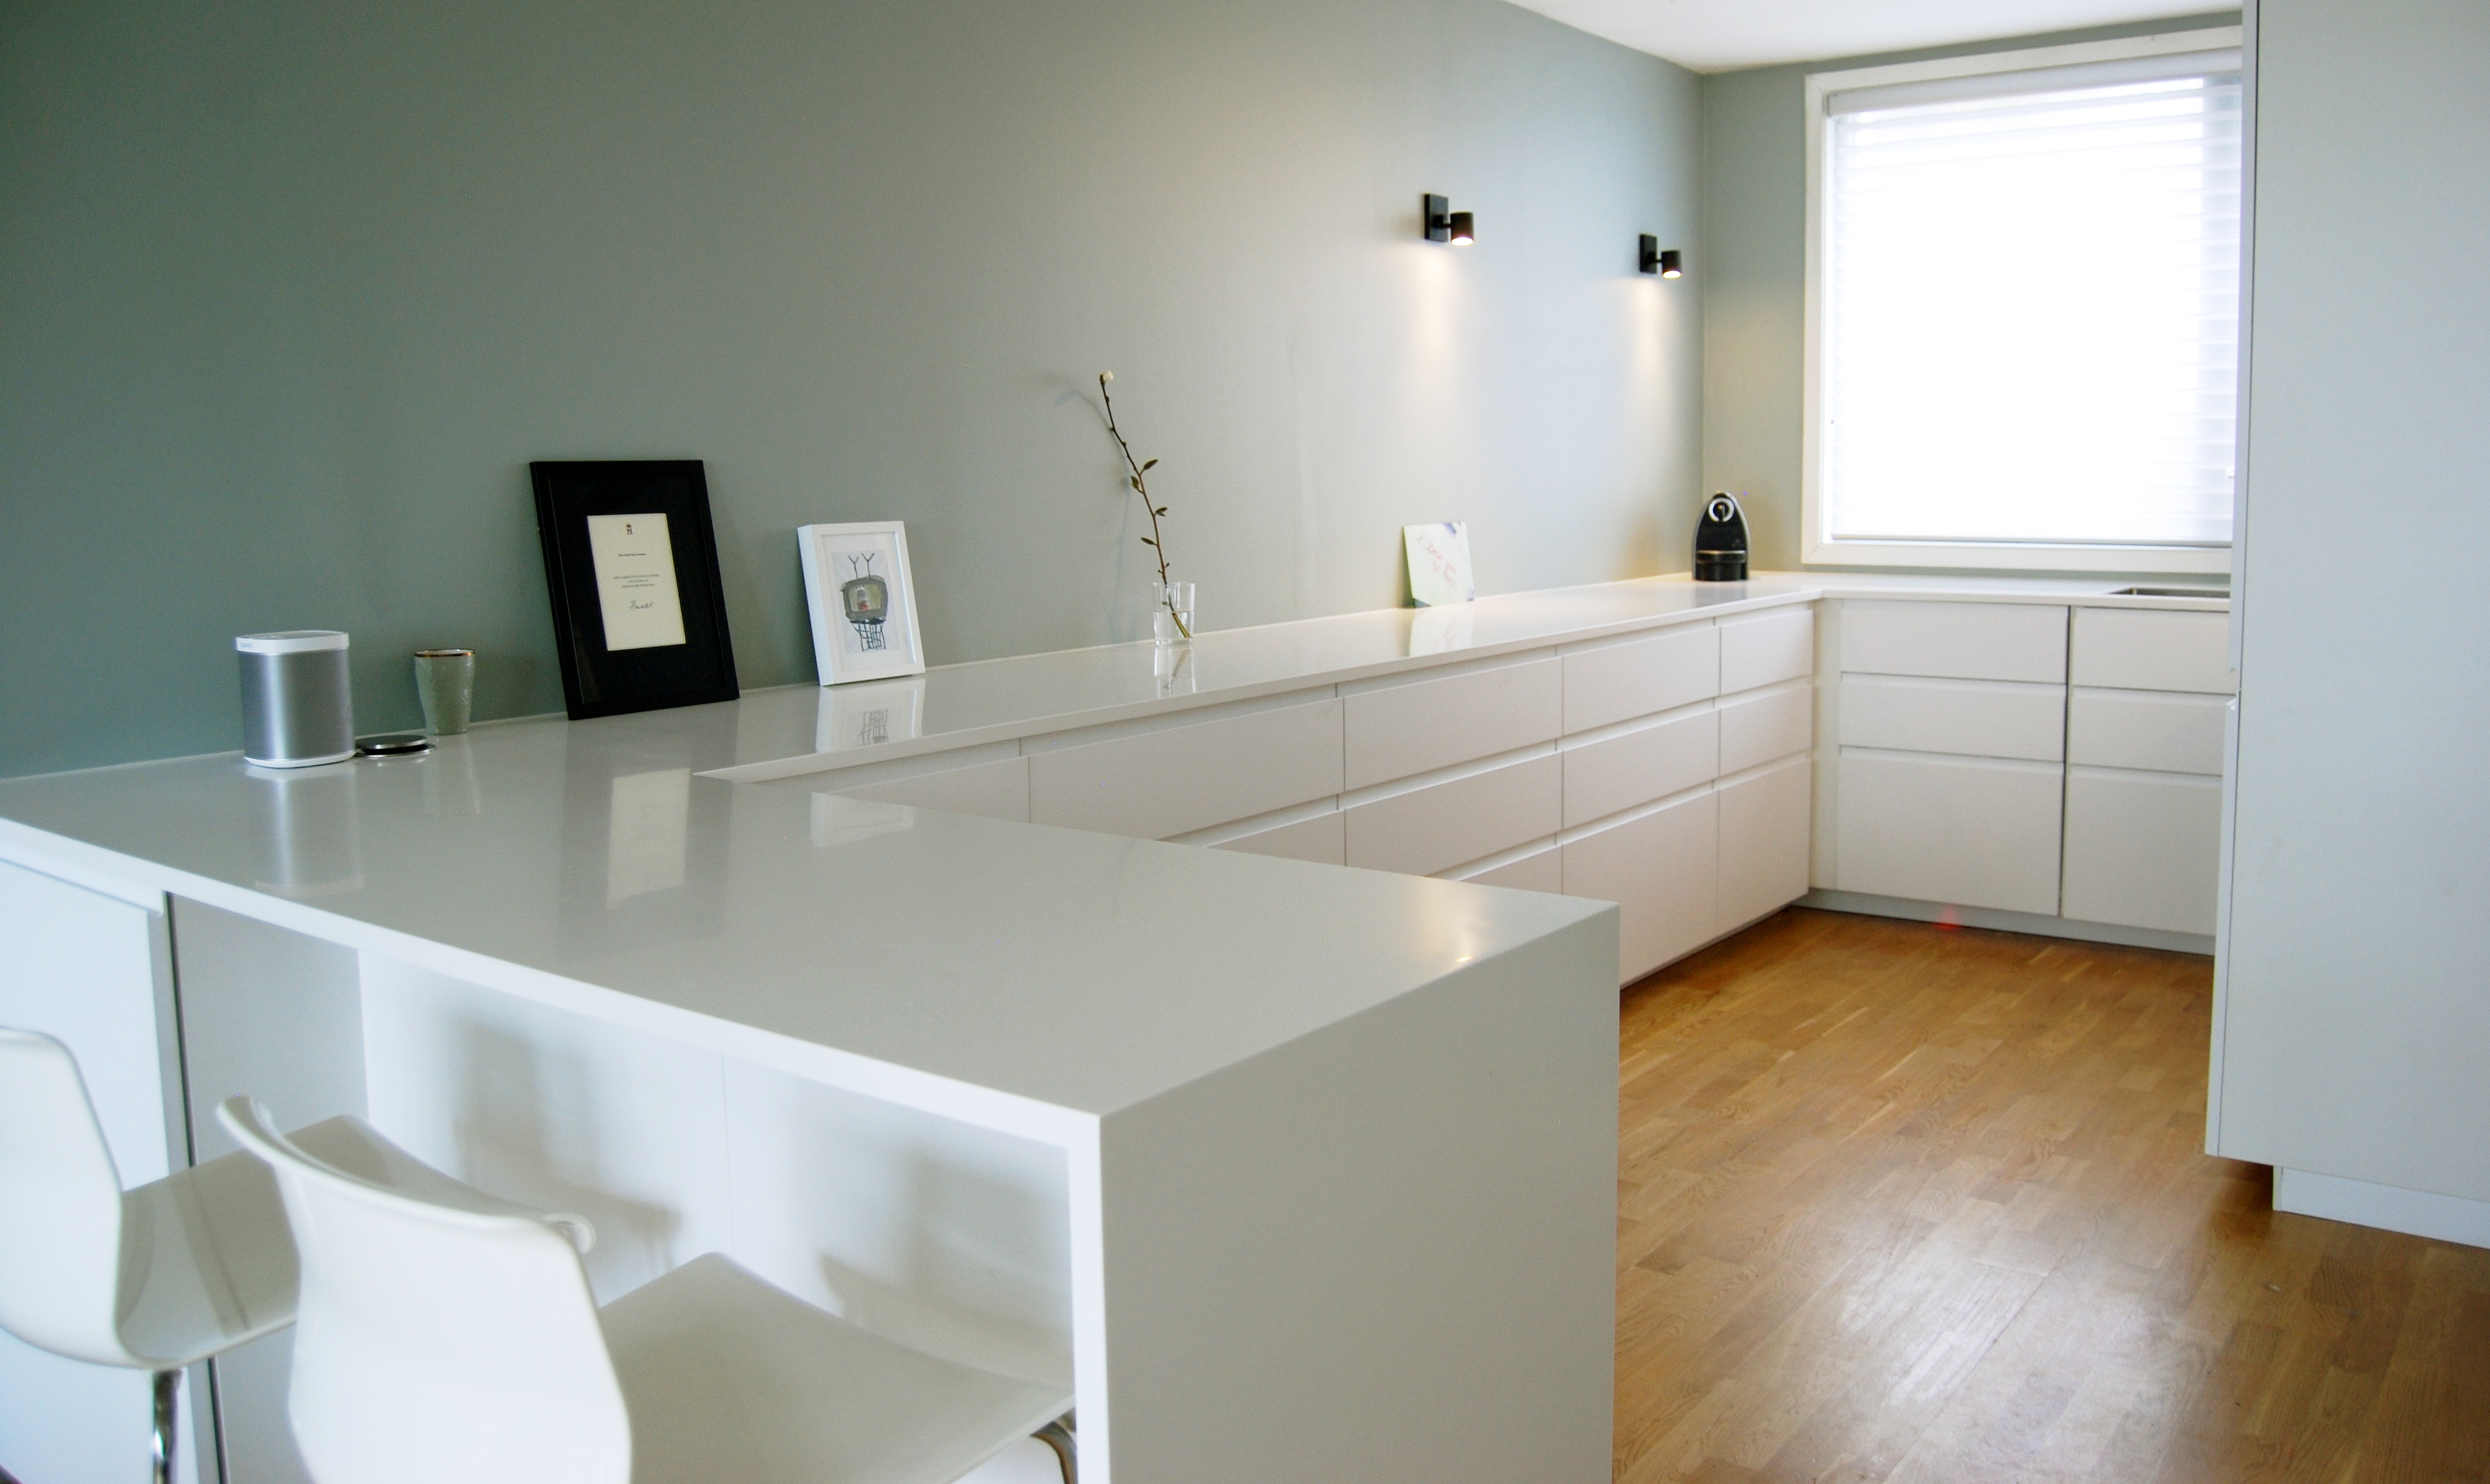 Marvelous We Wanted A New Ikea Kitchen But With A Worktop From Another Dealer. In The  End We Ended Up With A Corian Worktop. When You Weld Your Corian Worktop ...